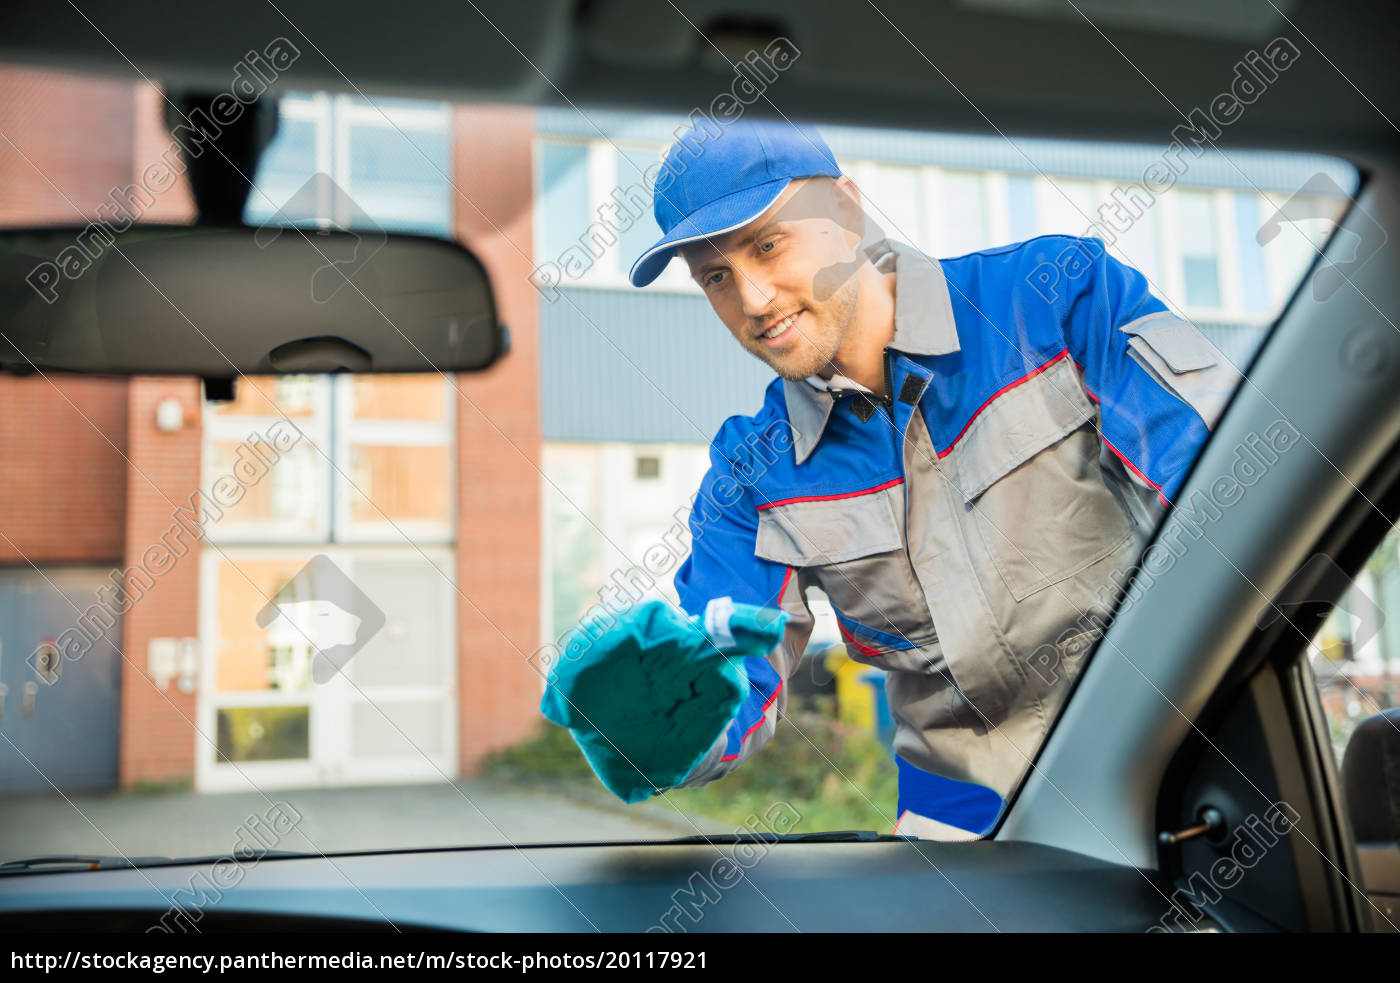 man, cleaning, car, window, with, cloth - 20117921